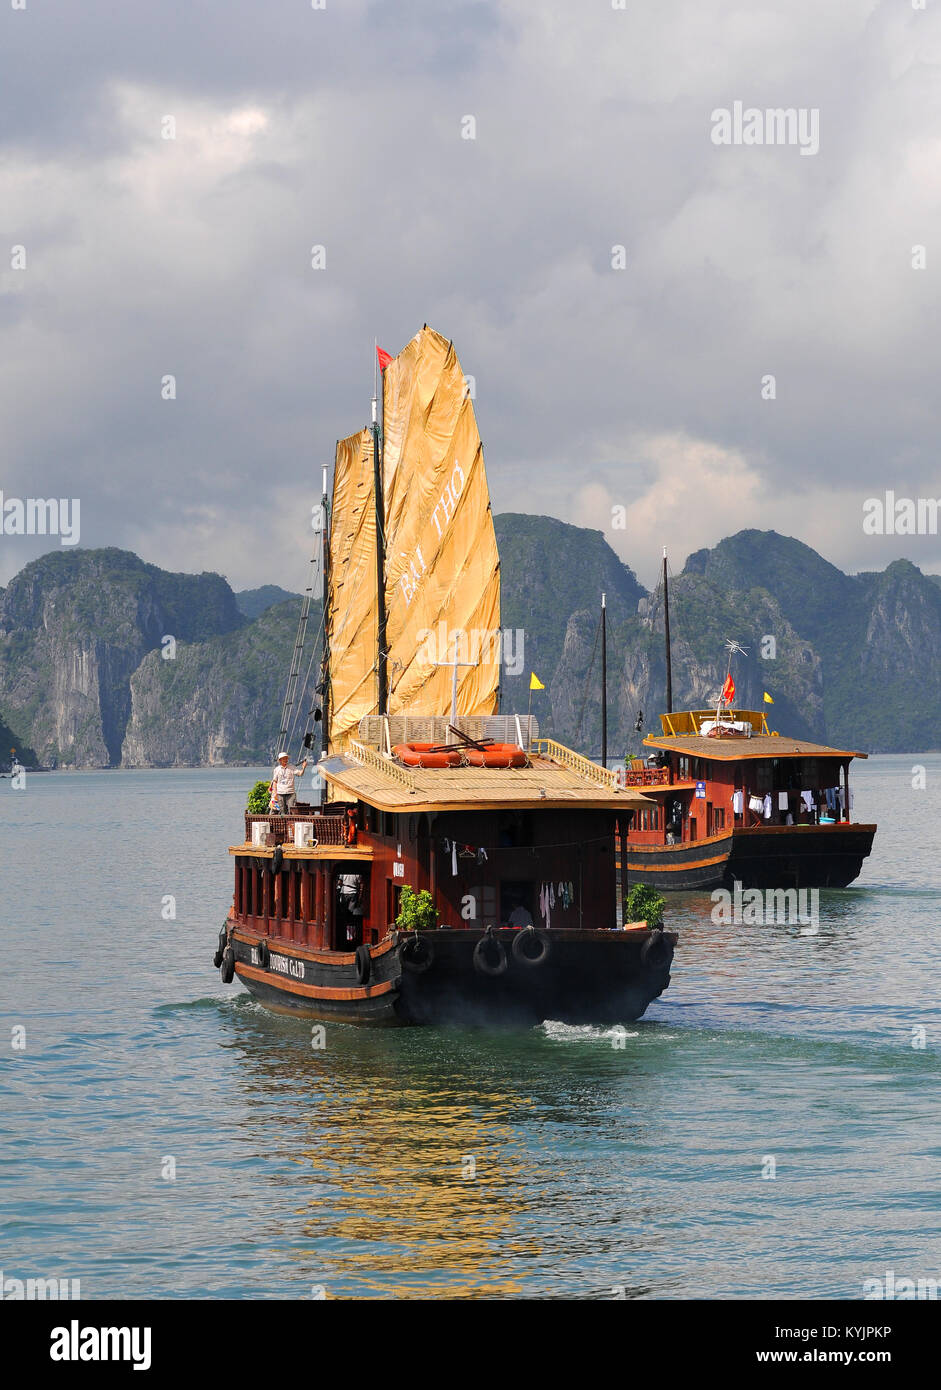 Tourist boat sailing on the famous Halong bay in Vietnam, Asia - Stock Image